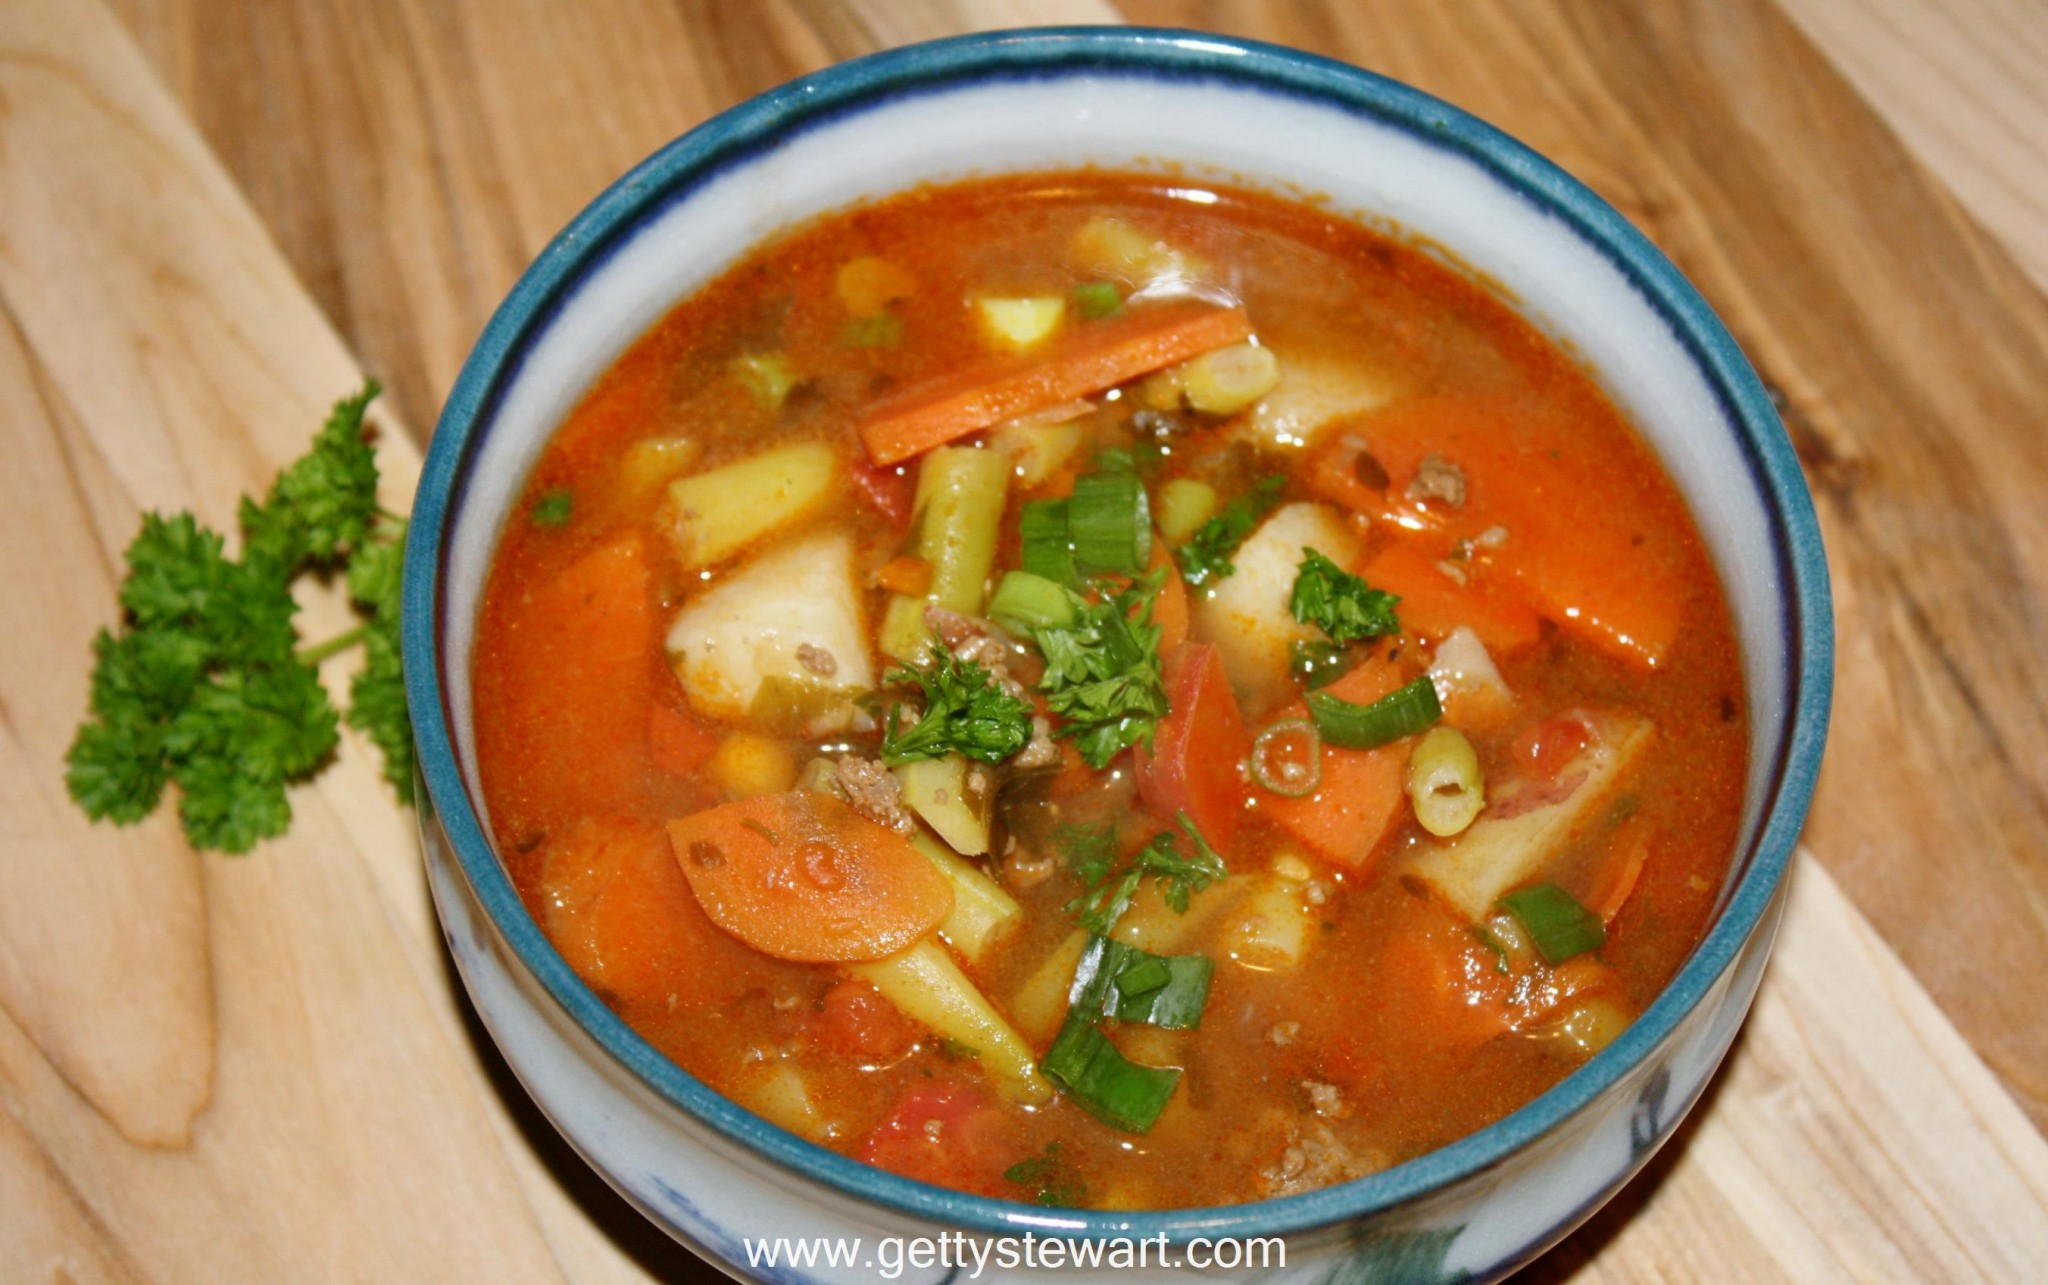 Garden Vegetable Hamburger Soup